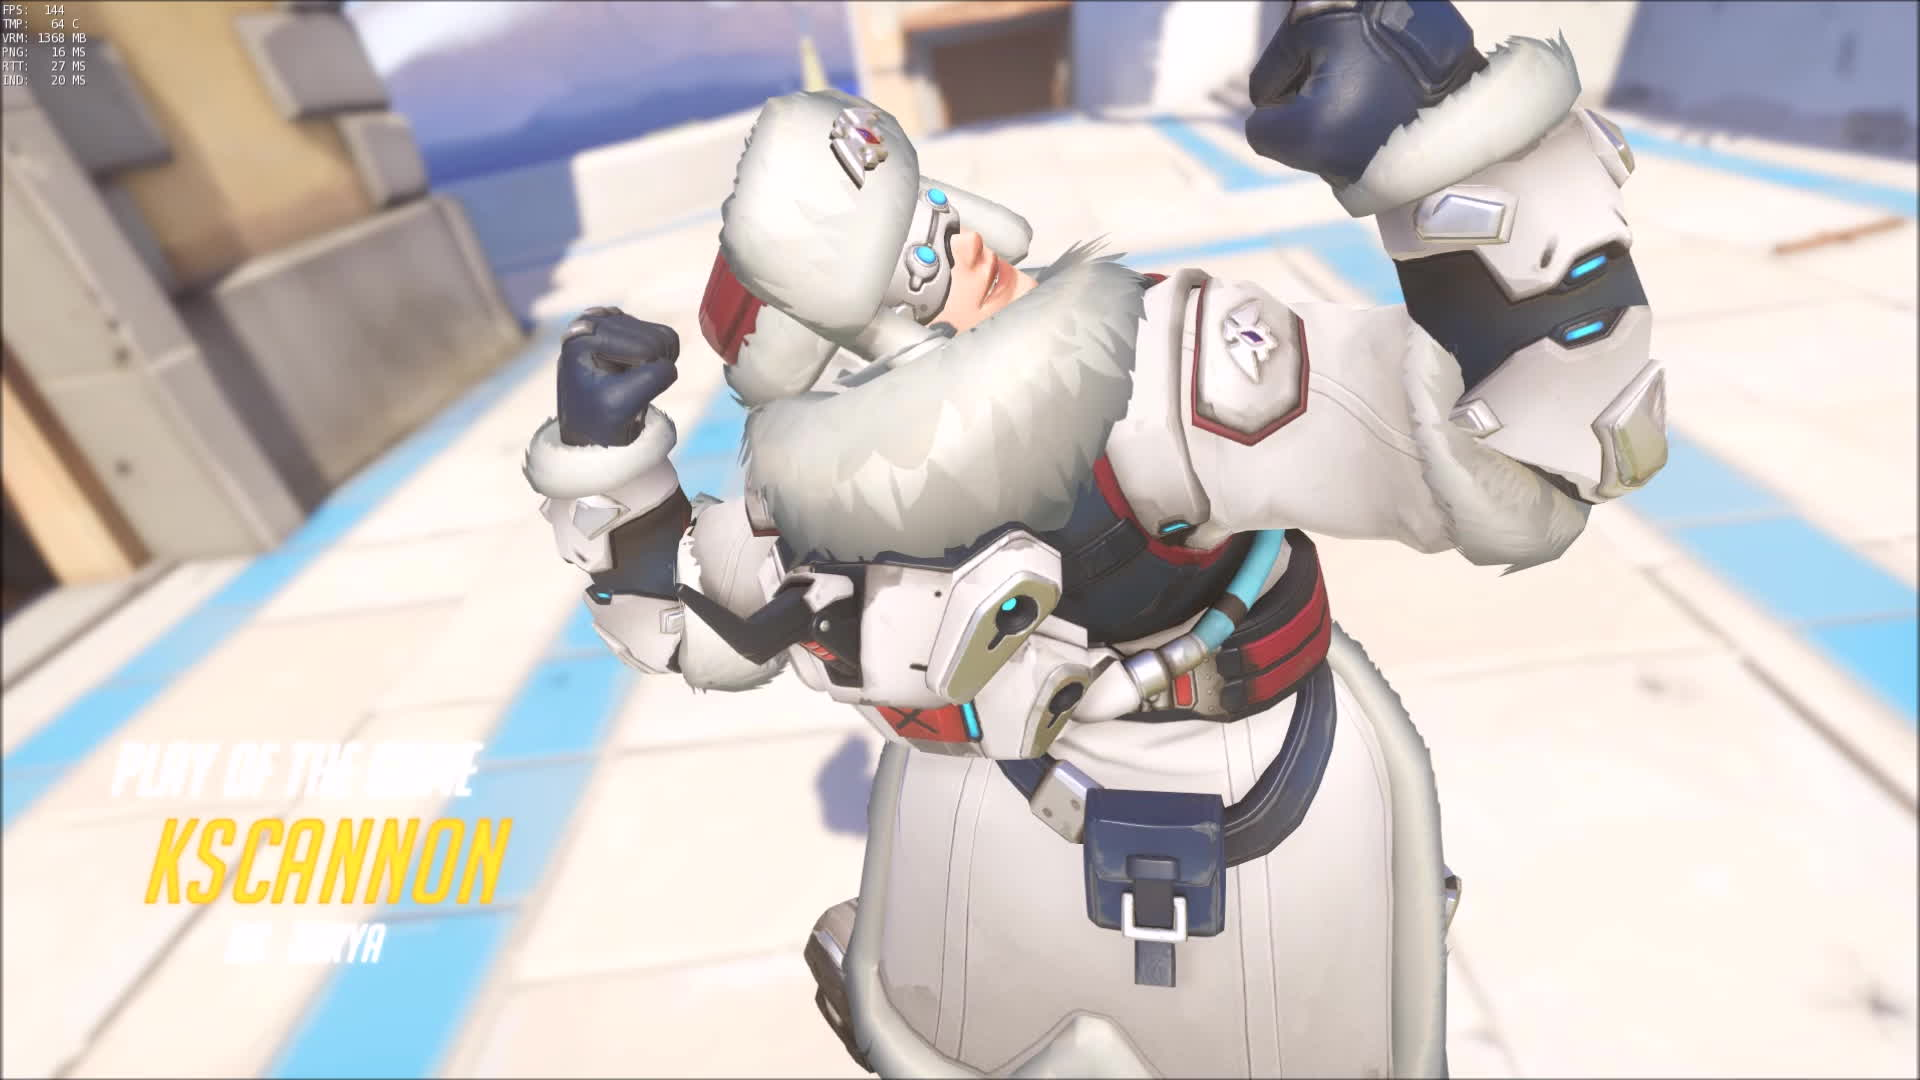 imagesofrussia, overwatch,  GIFs